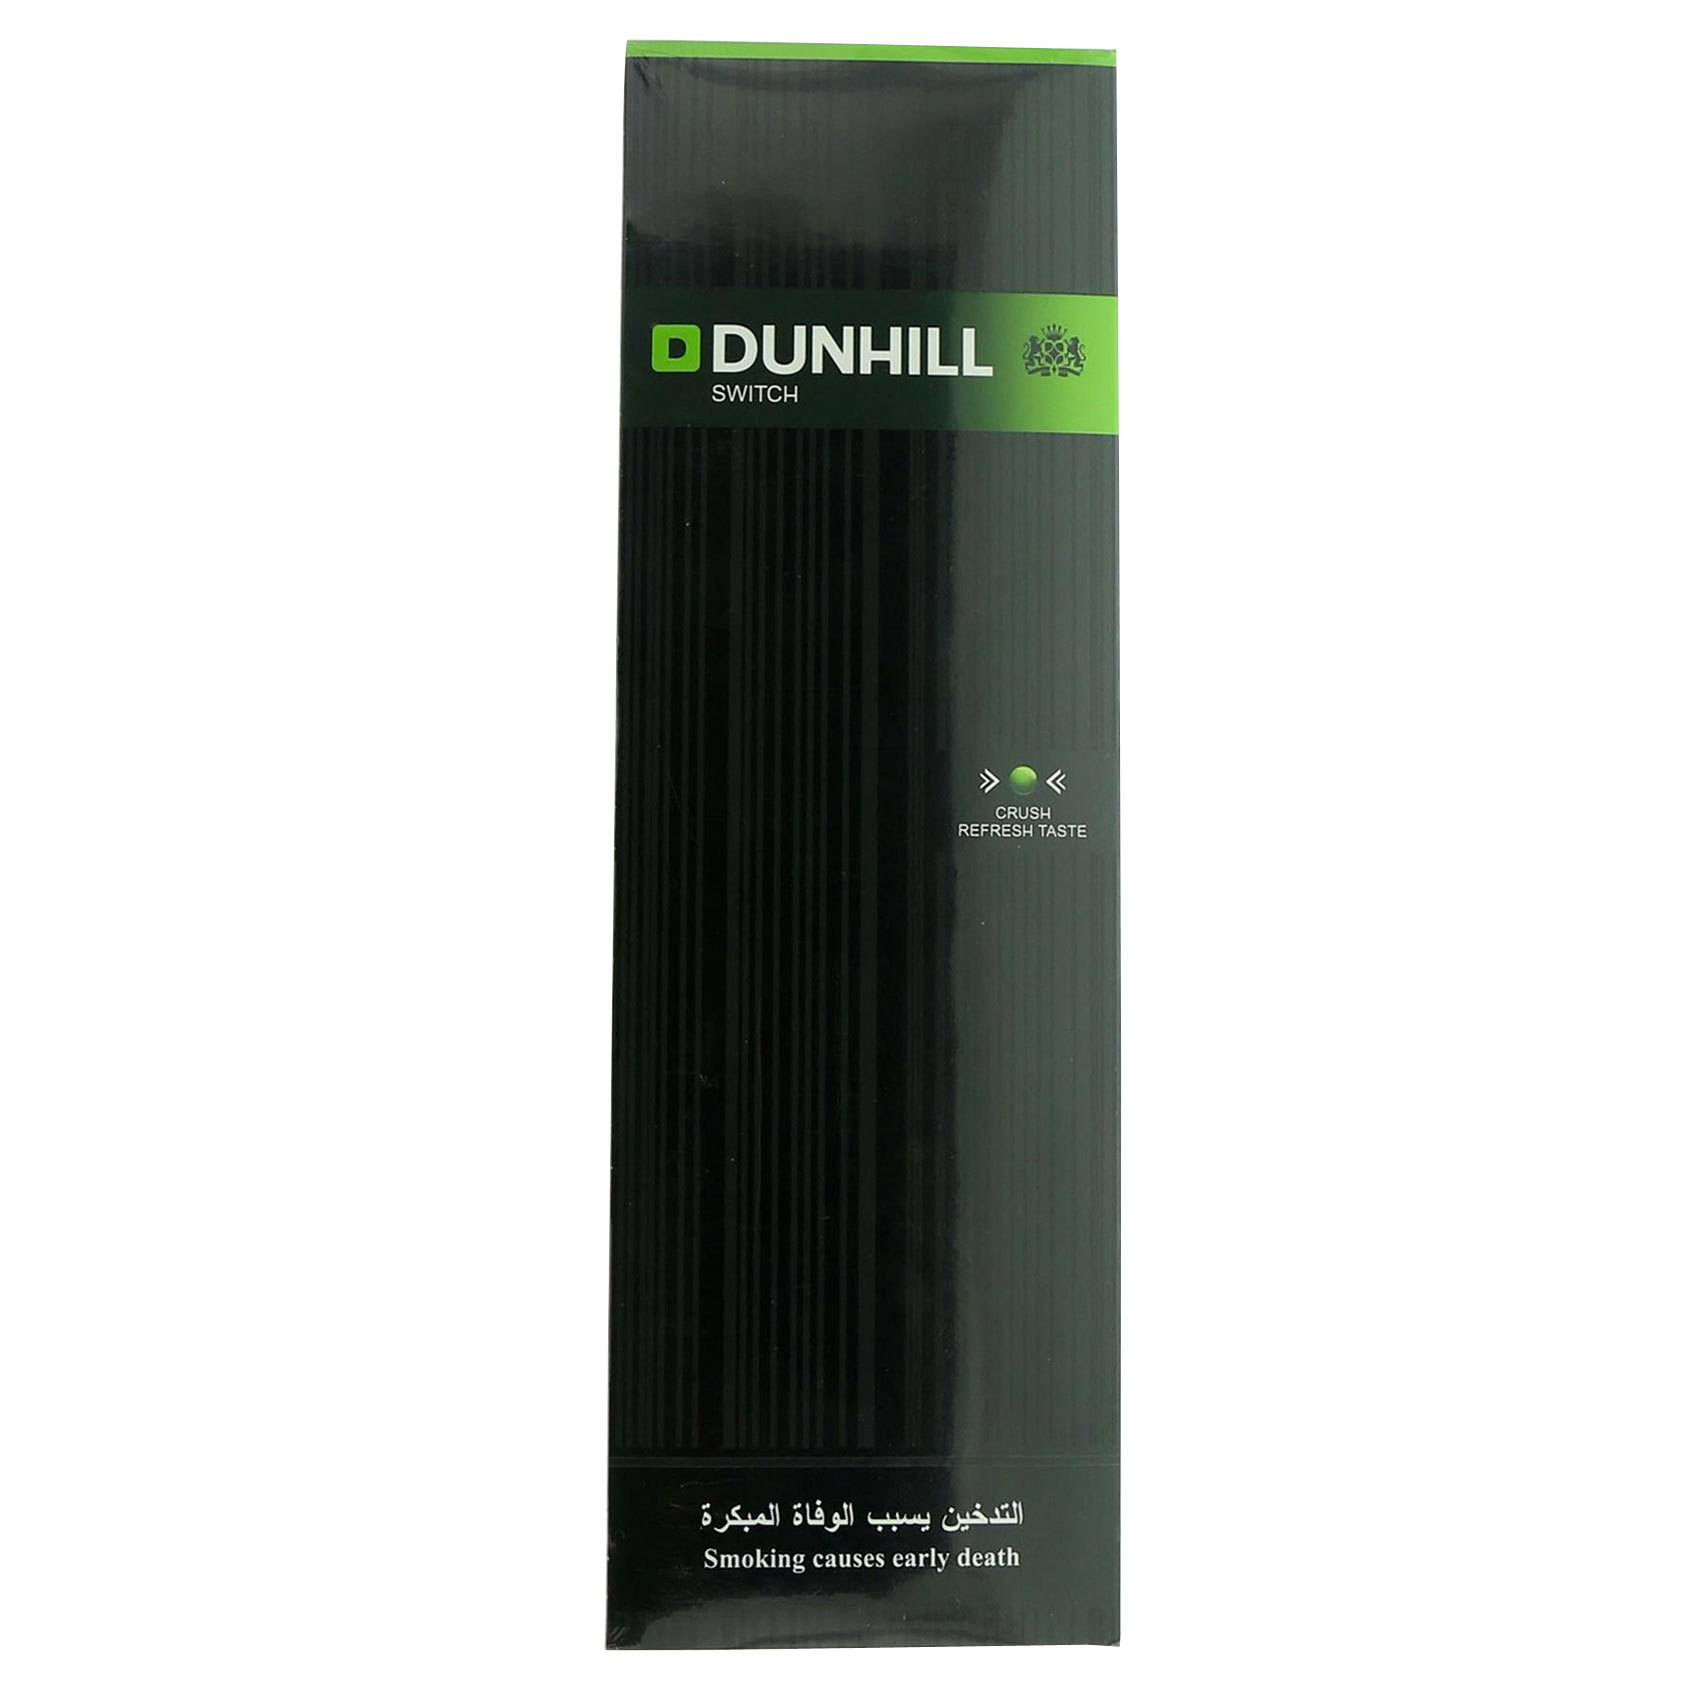 DUNHILL SWITCH BLACK 7MG 20X10